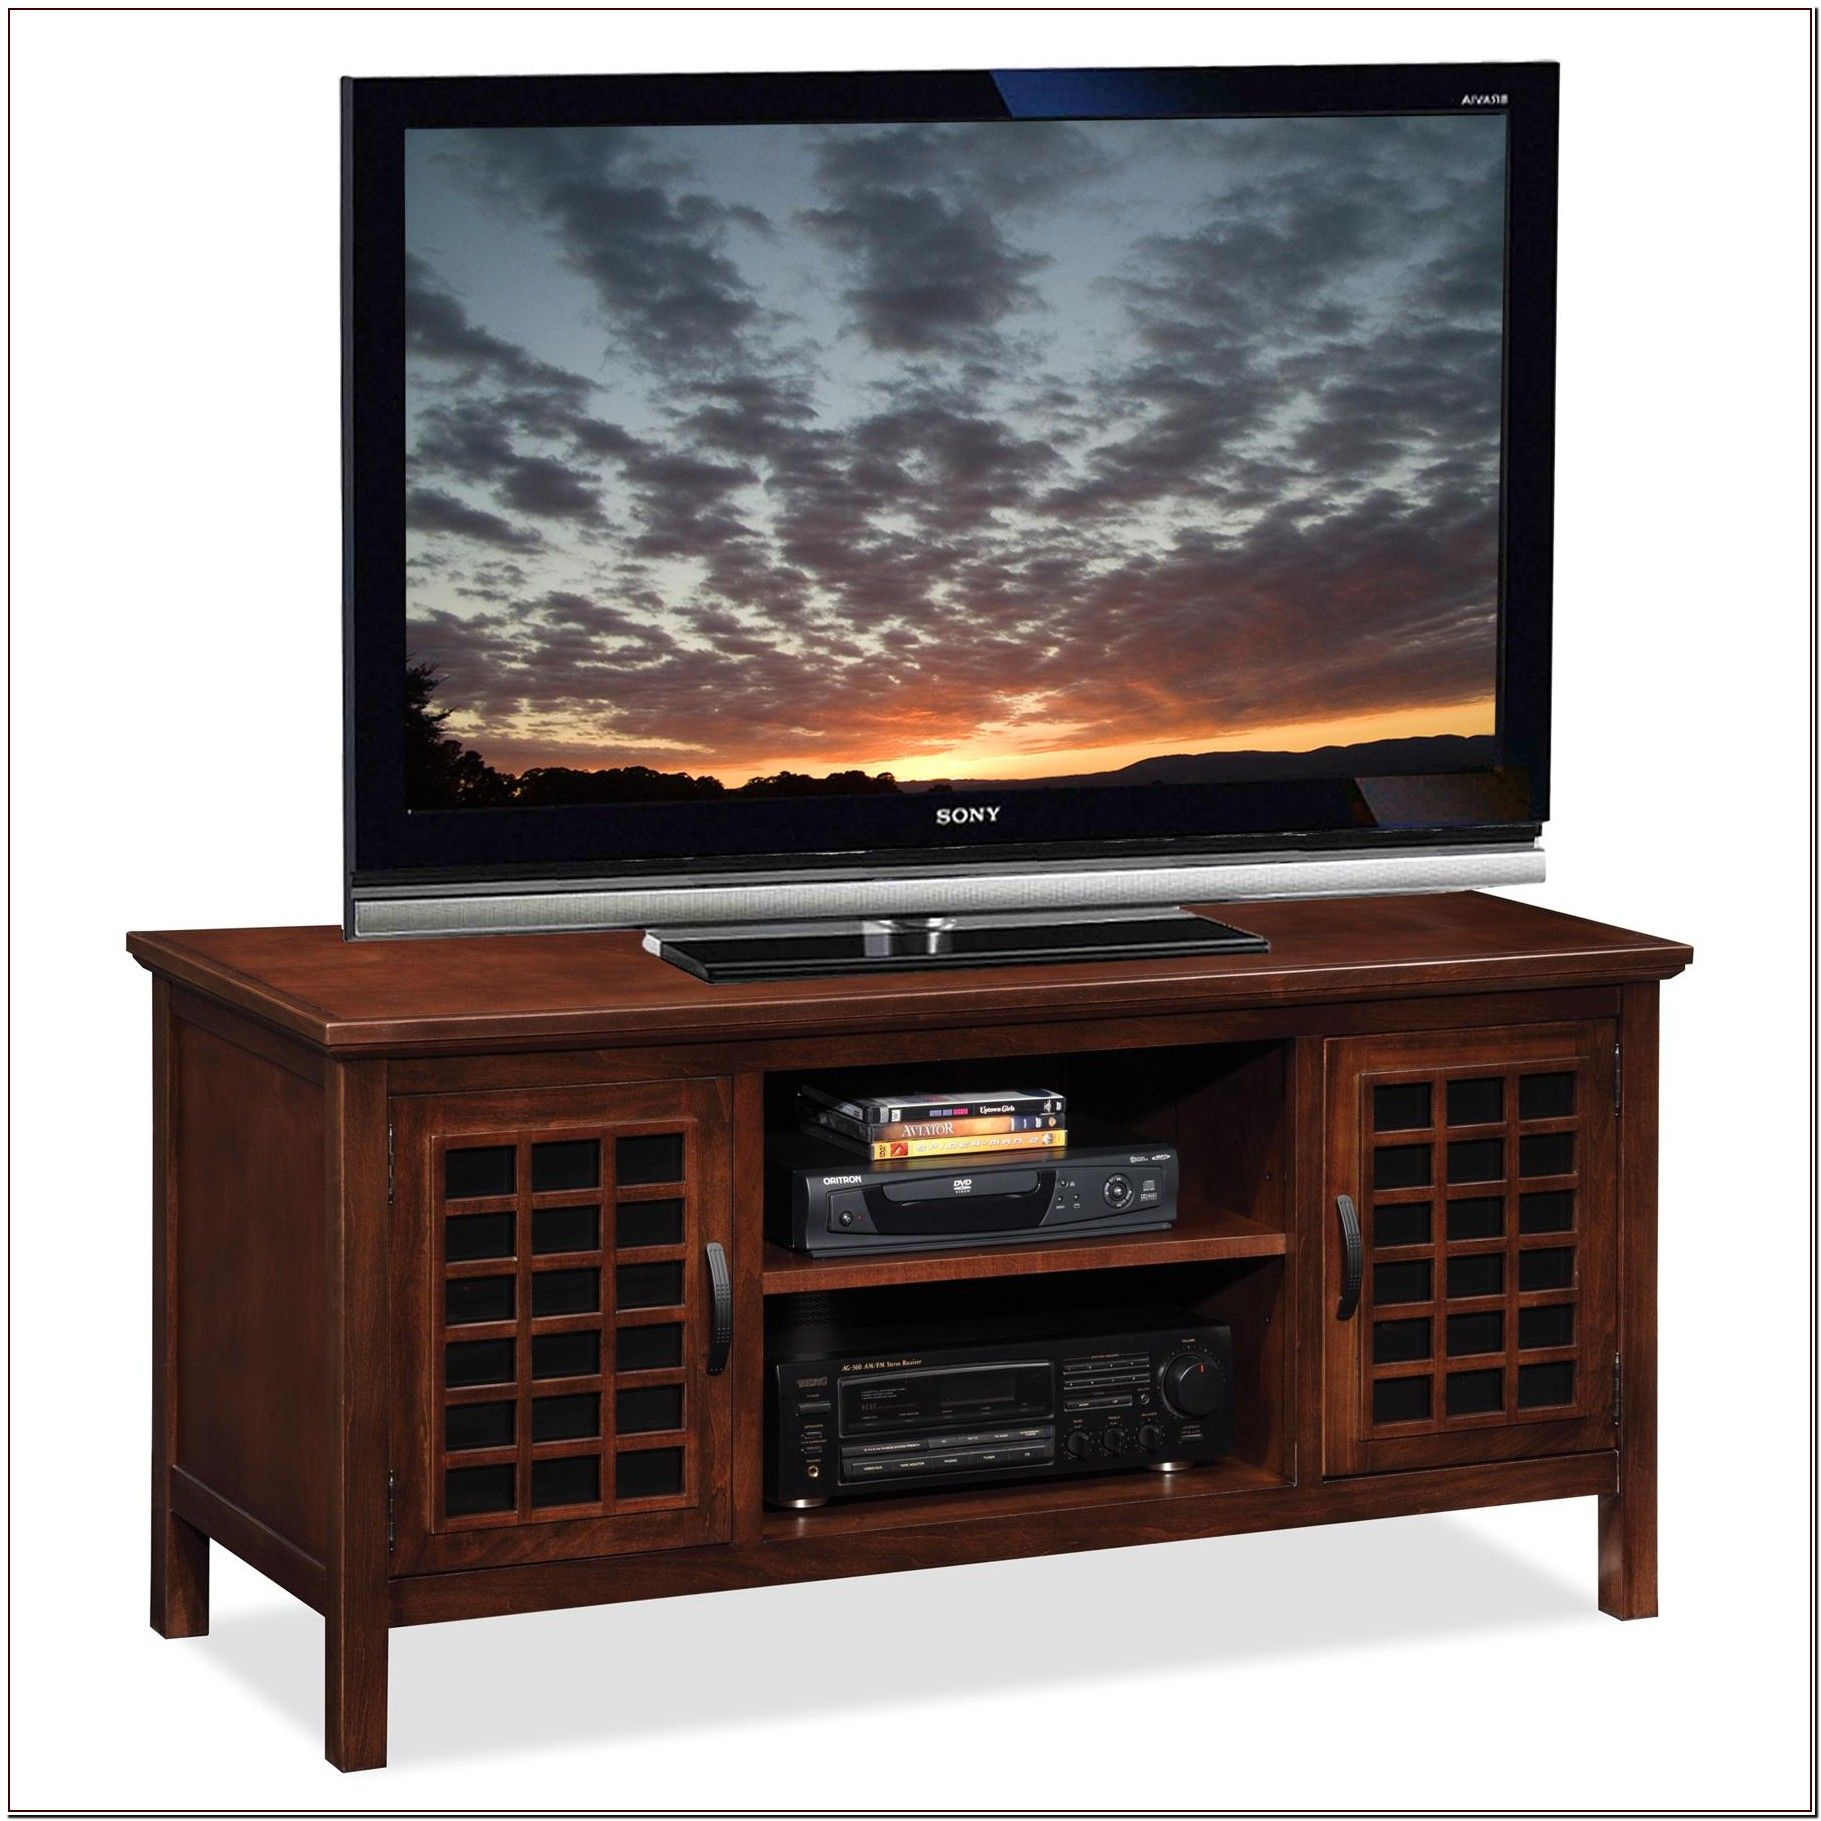 45 Reference Of Black Tv Stand Cheap Tv Stand With Glass Doors Tv Stand Wood Dark Wood Tv Stand